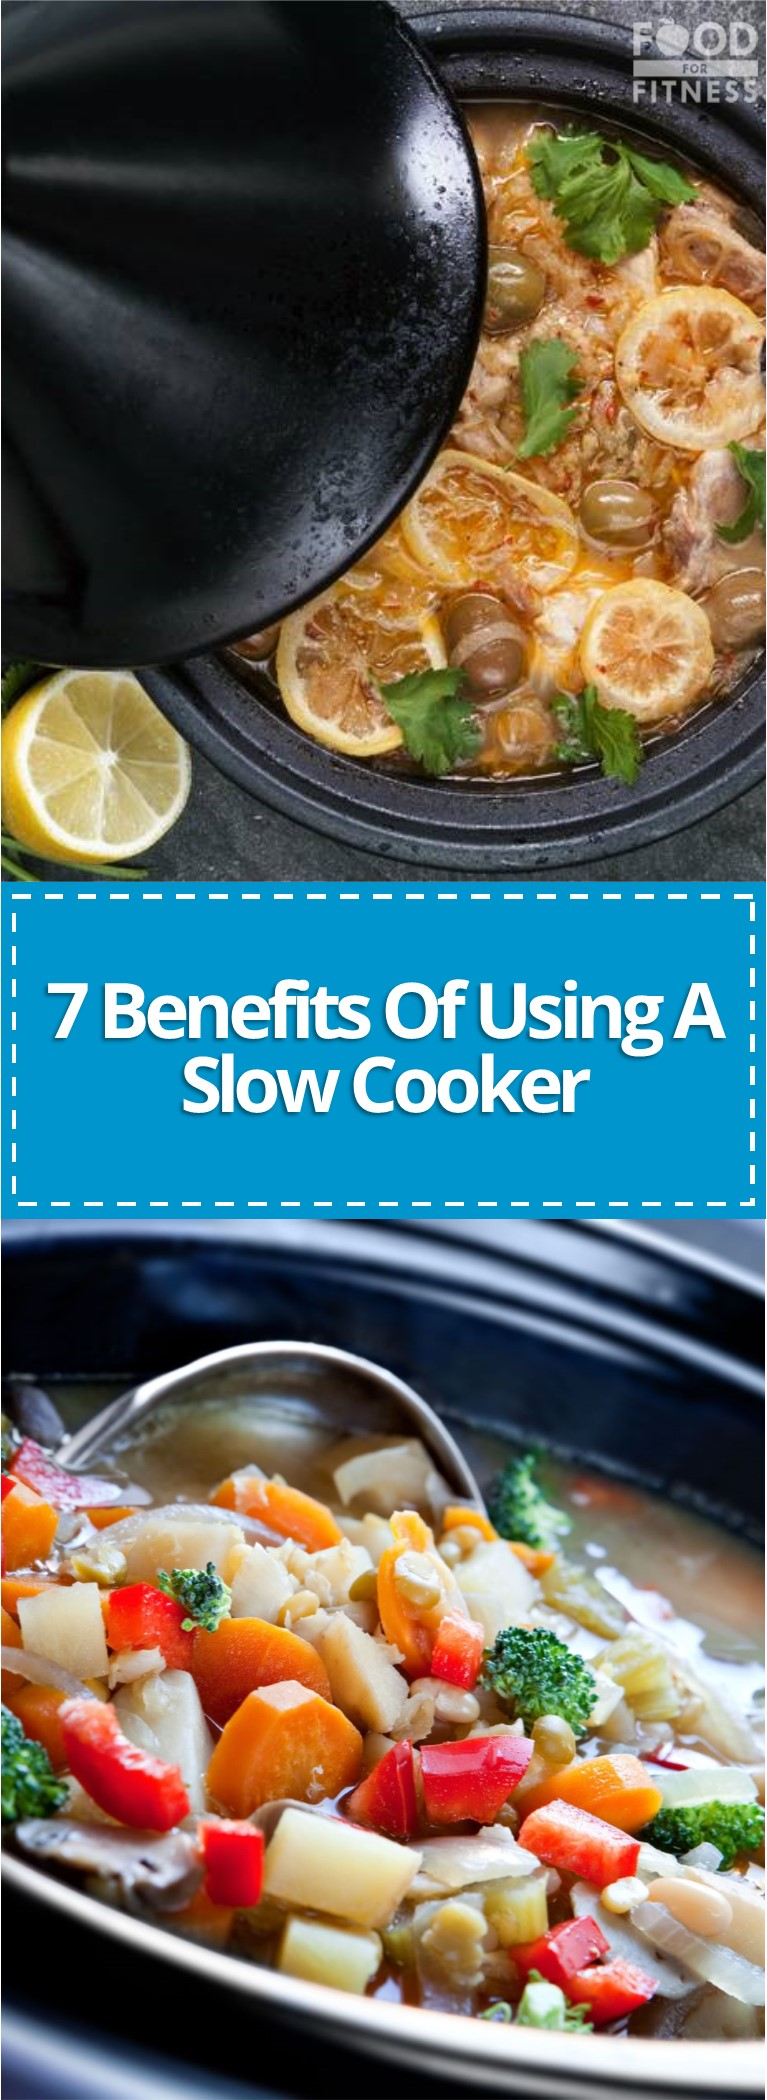 7 Benefits Of Using A Slow Cooker